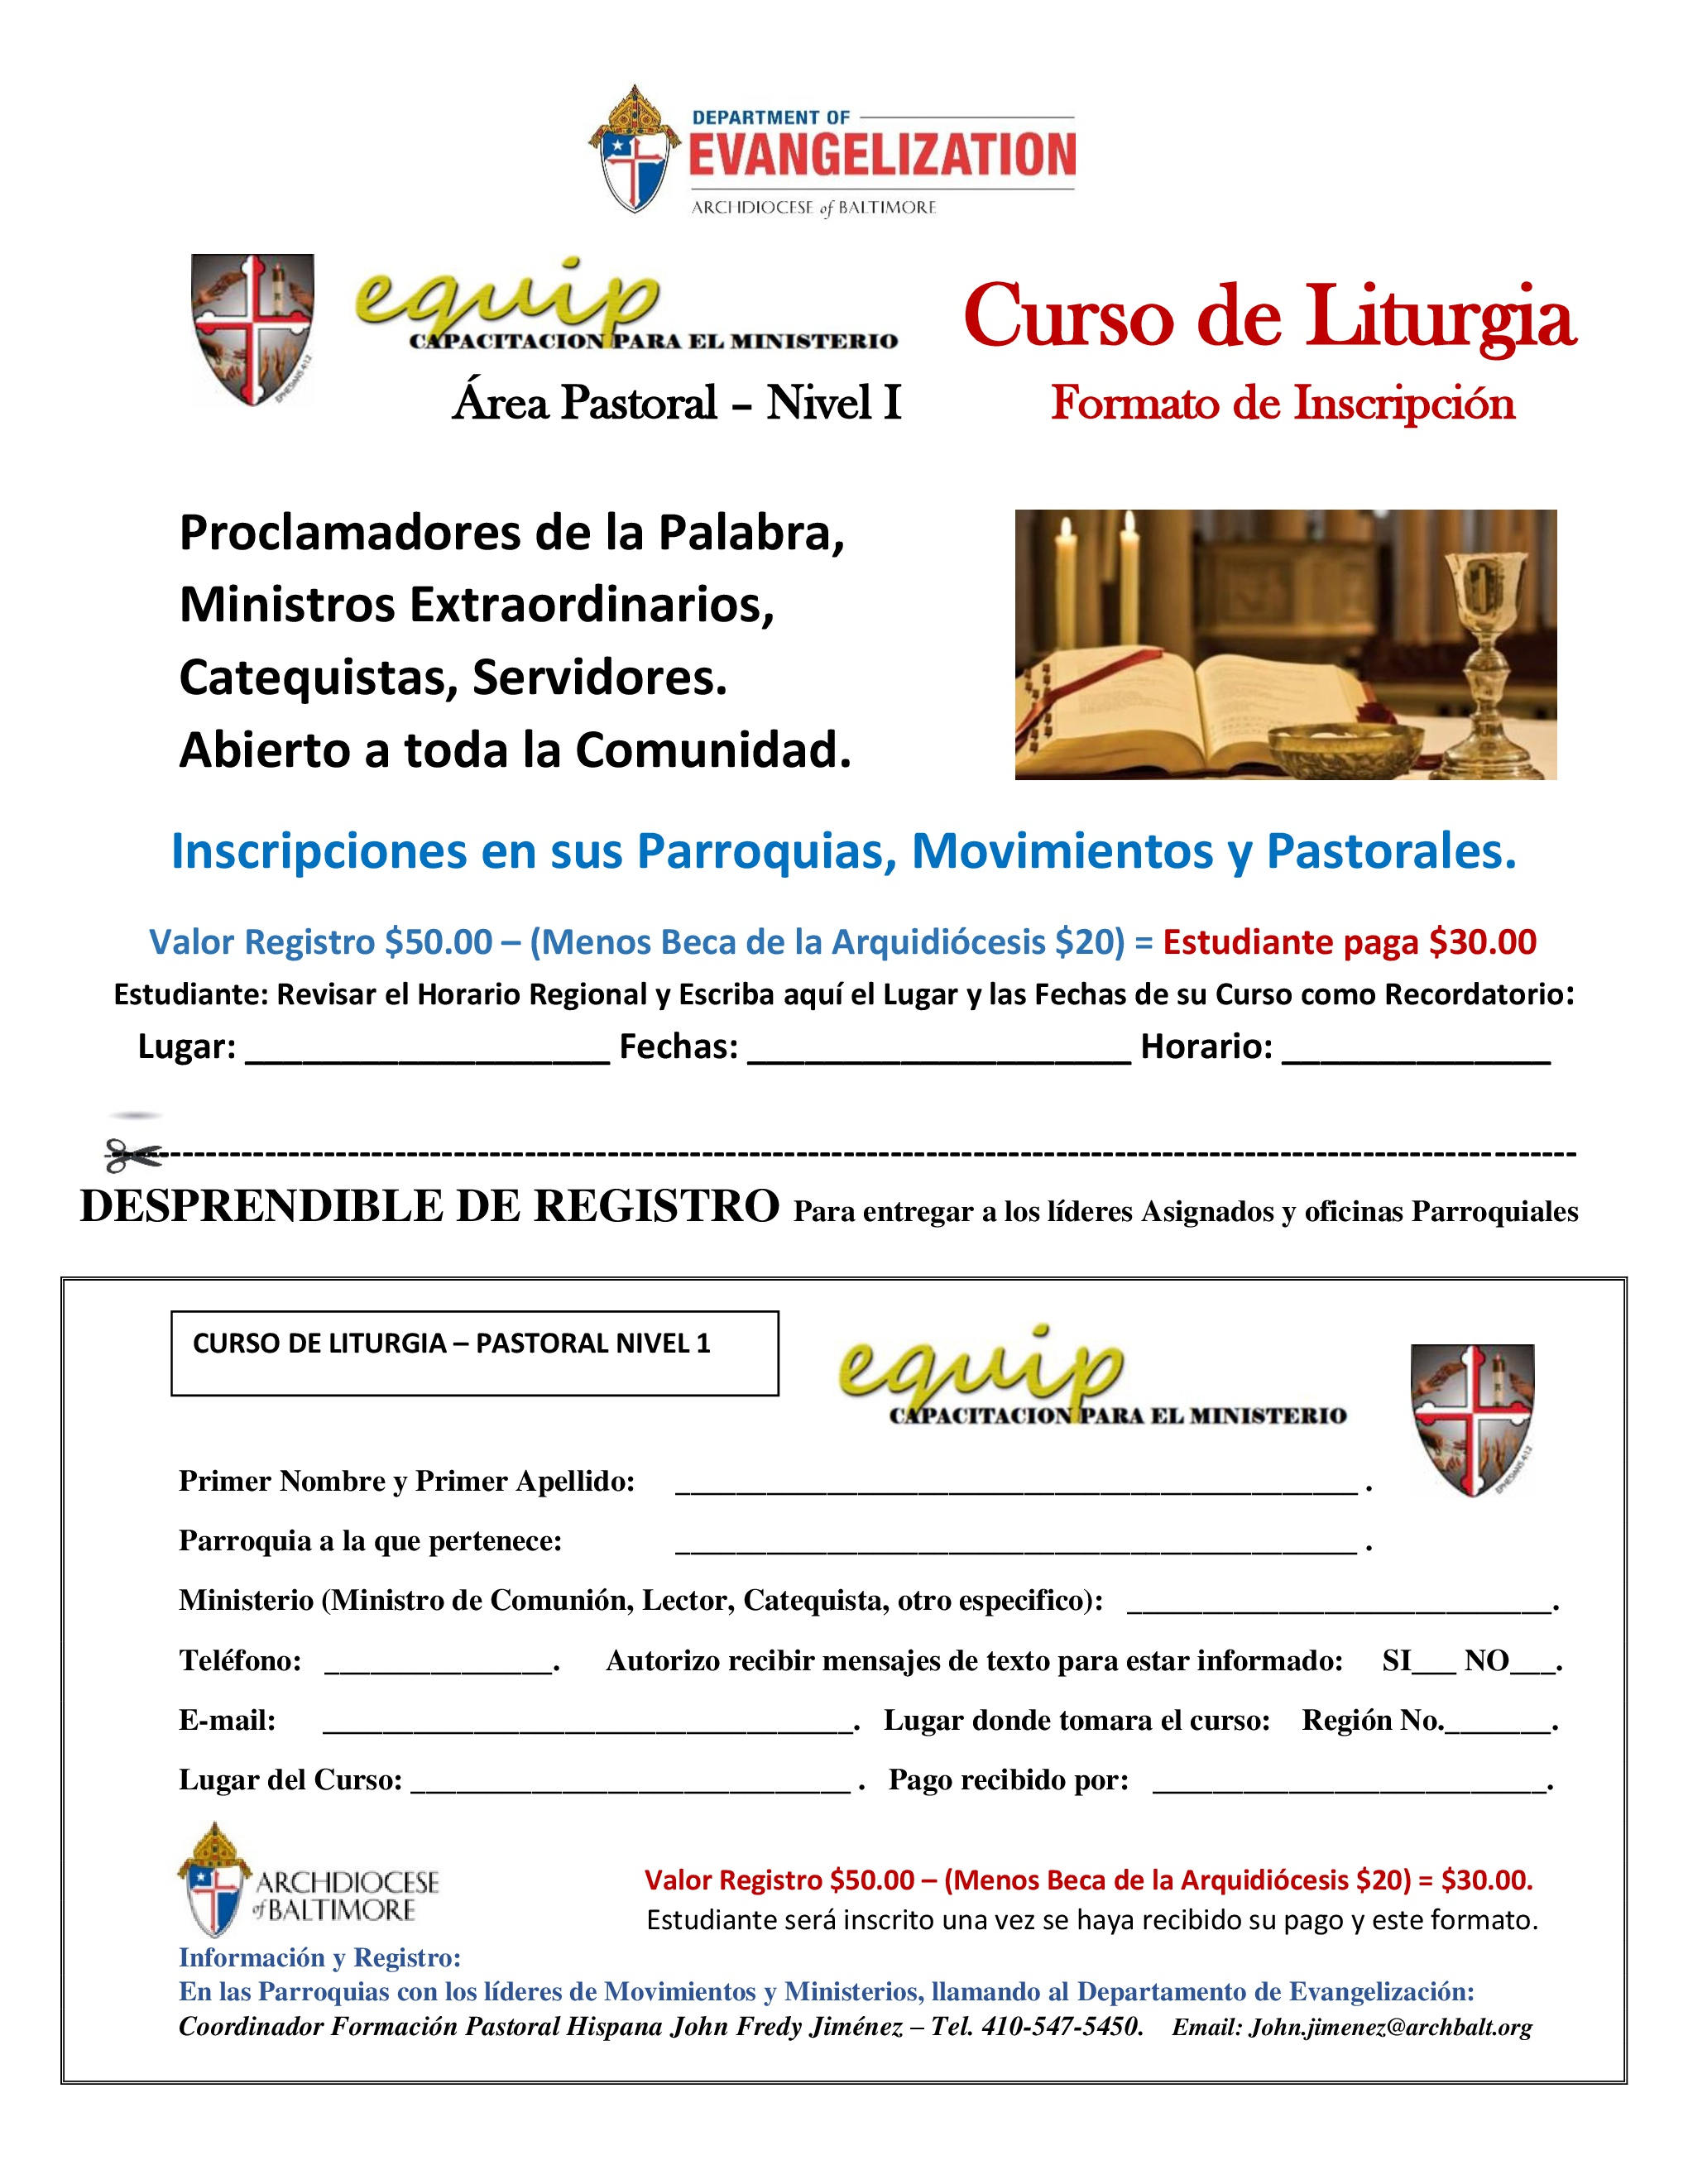 Equip for Ministry – The Department of Evangelization with the office of Hispanic Pastoral Formation is offering a Liturgy course in Spanish, requiring special attendance of Lectors and extraordinary ministries of communion. The liturgy course Is also open for new servers. This program of formation begins the first week of October around parishes with the Hispanic ministry.